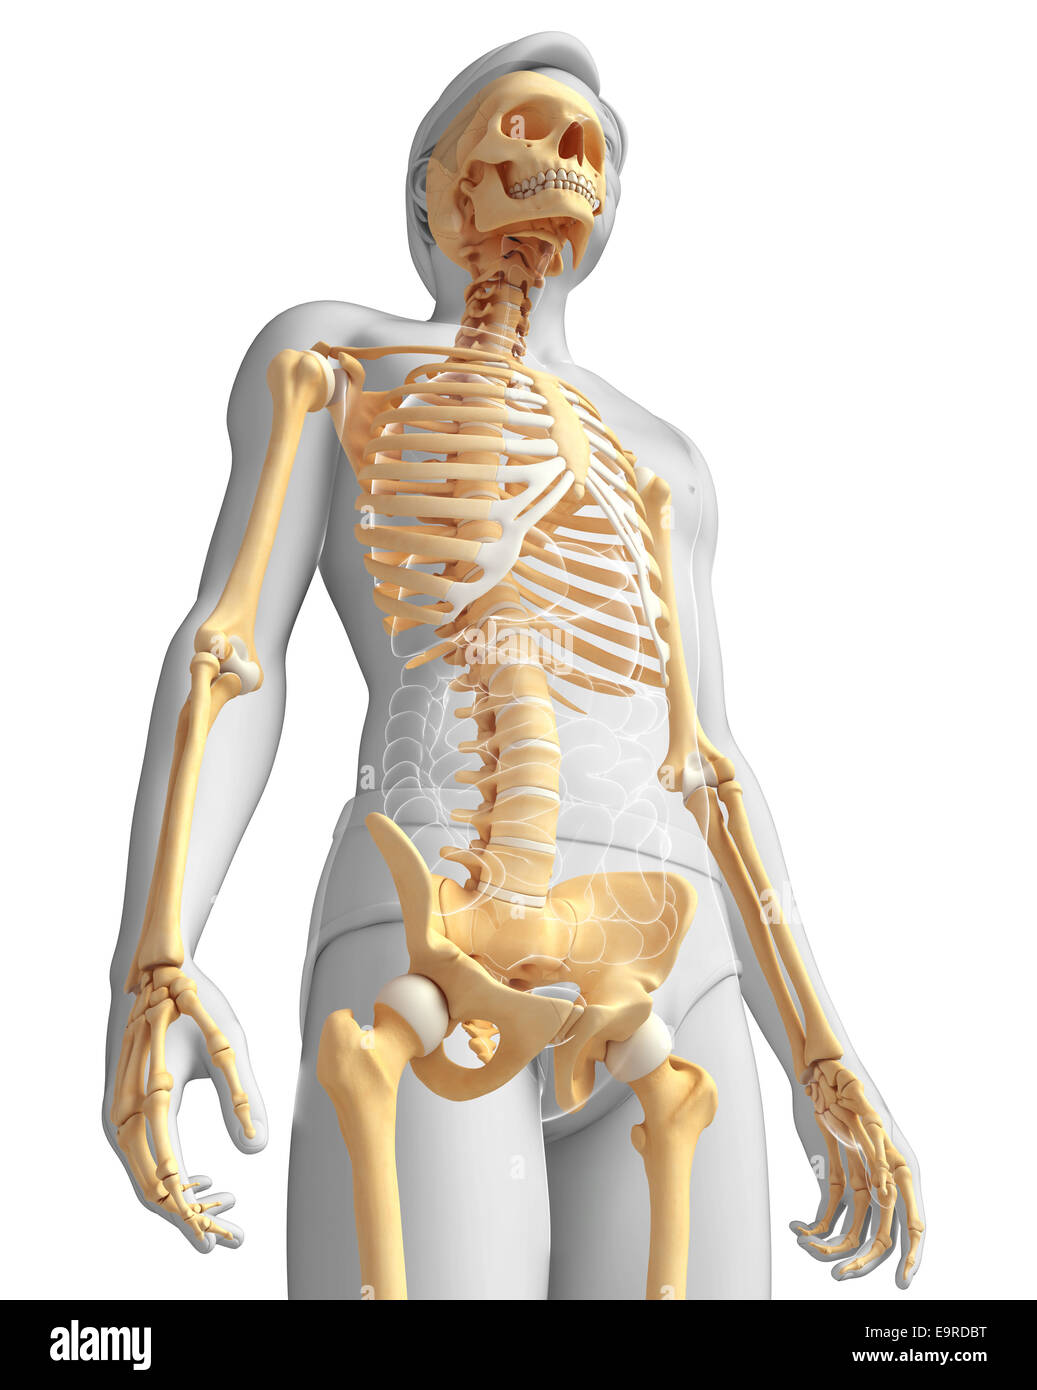 Illustration Of Human Skeleton Side View Stock Photo 74888796 Alamy